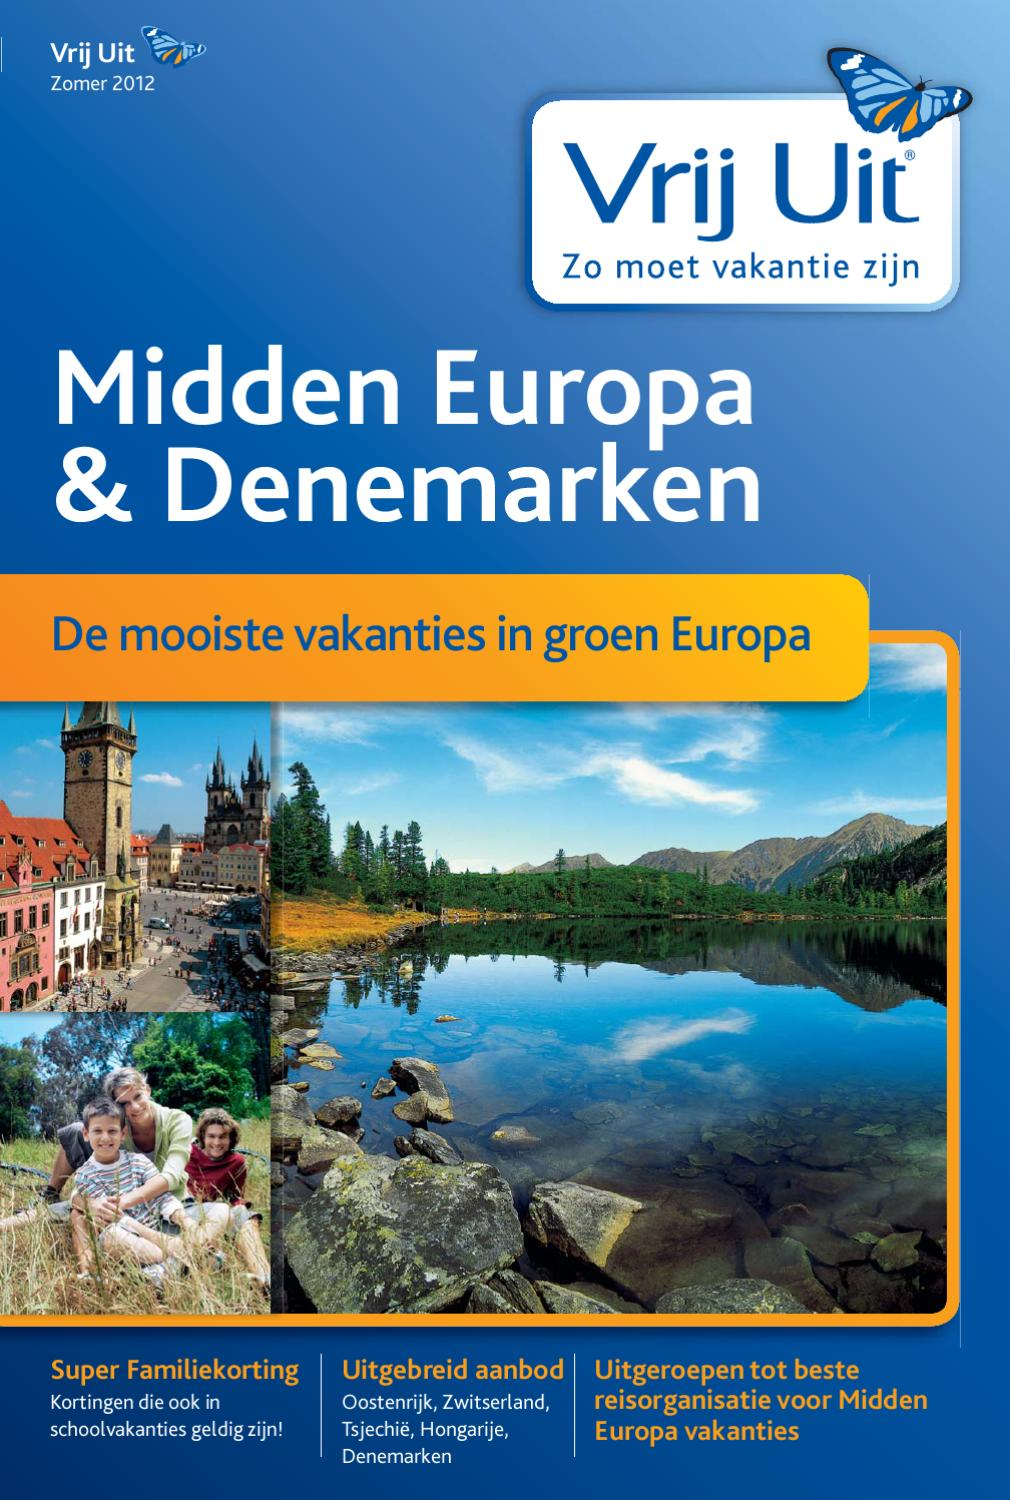 Vrij Uit Midden Europa Zomer 2012 by Thomas Cook - issuu